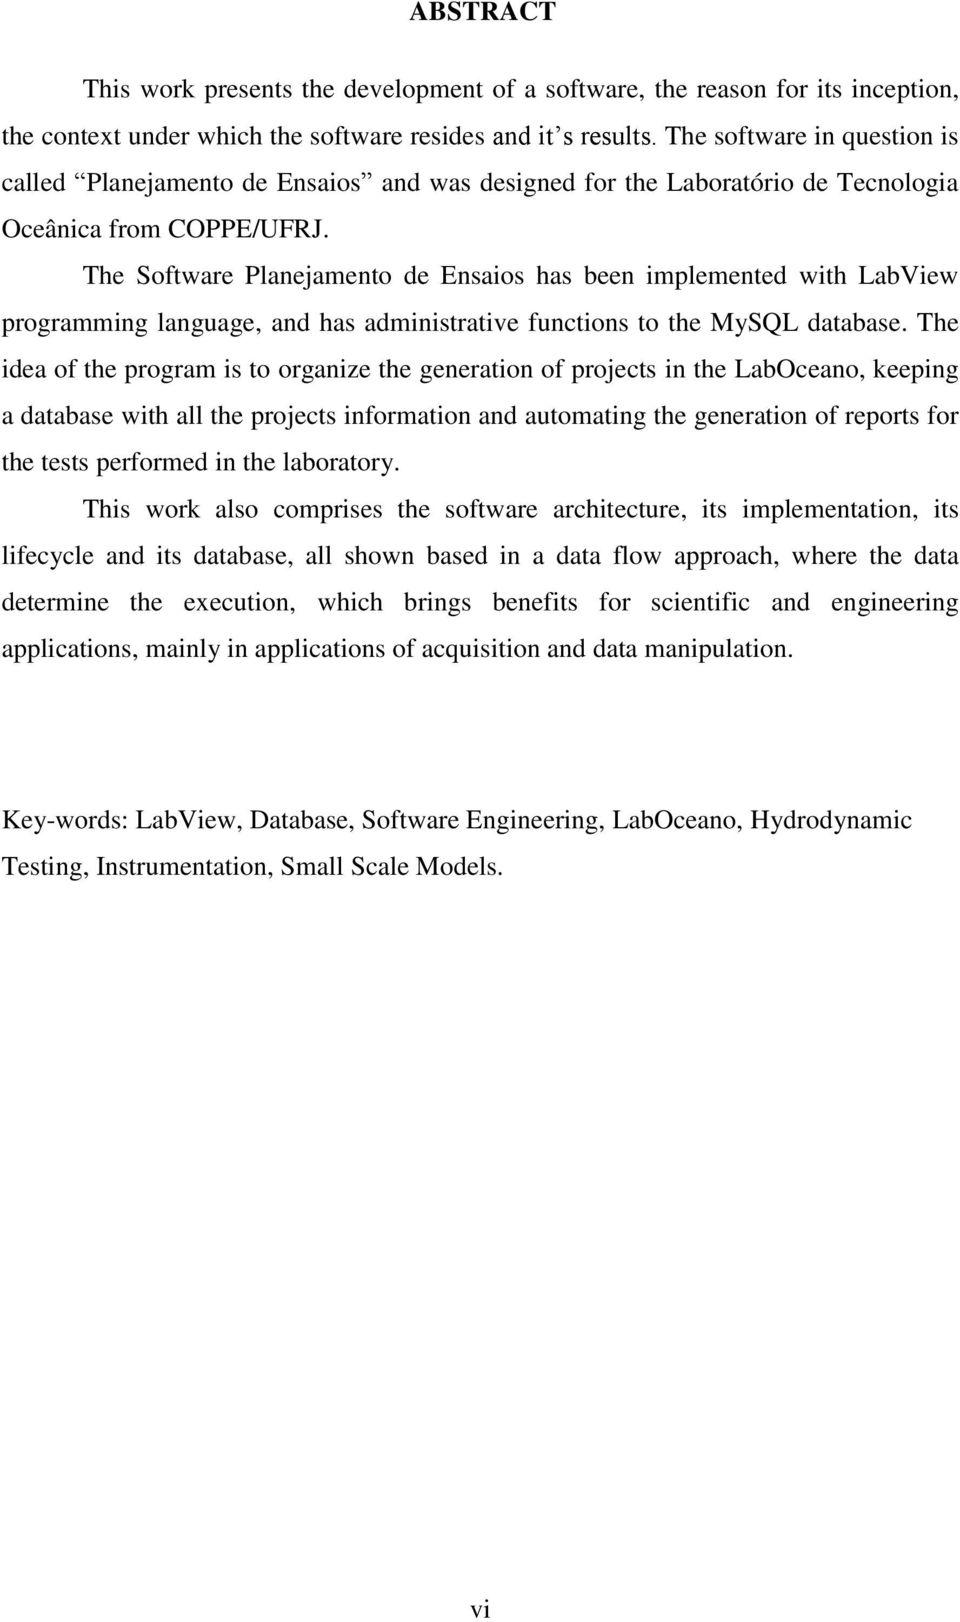 The Software Planejamento de Ensaios has been implemented with LabView programming language, and has administrative functions to the MySQL database.